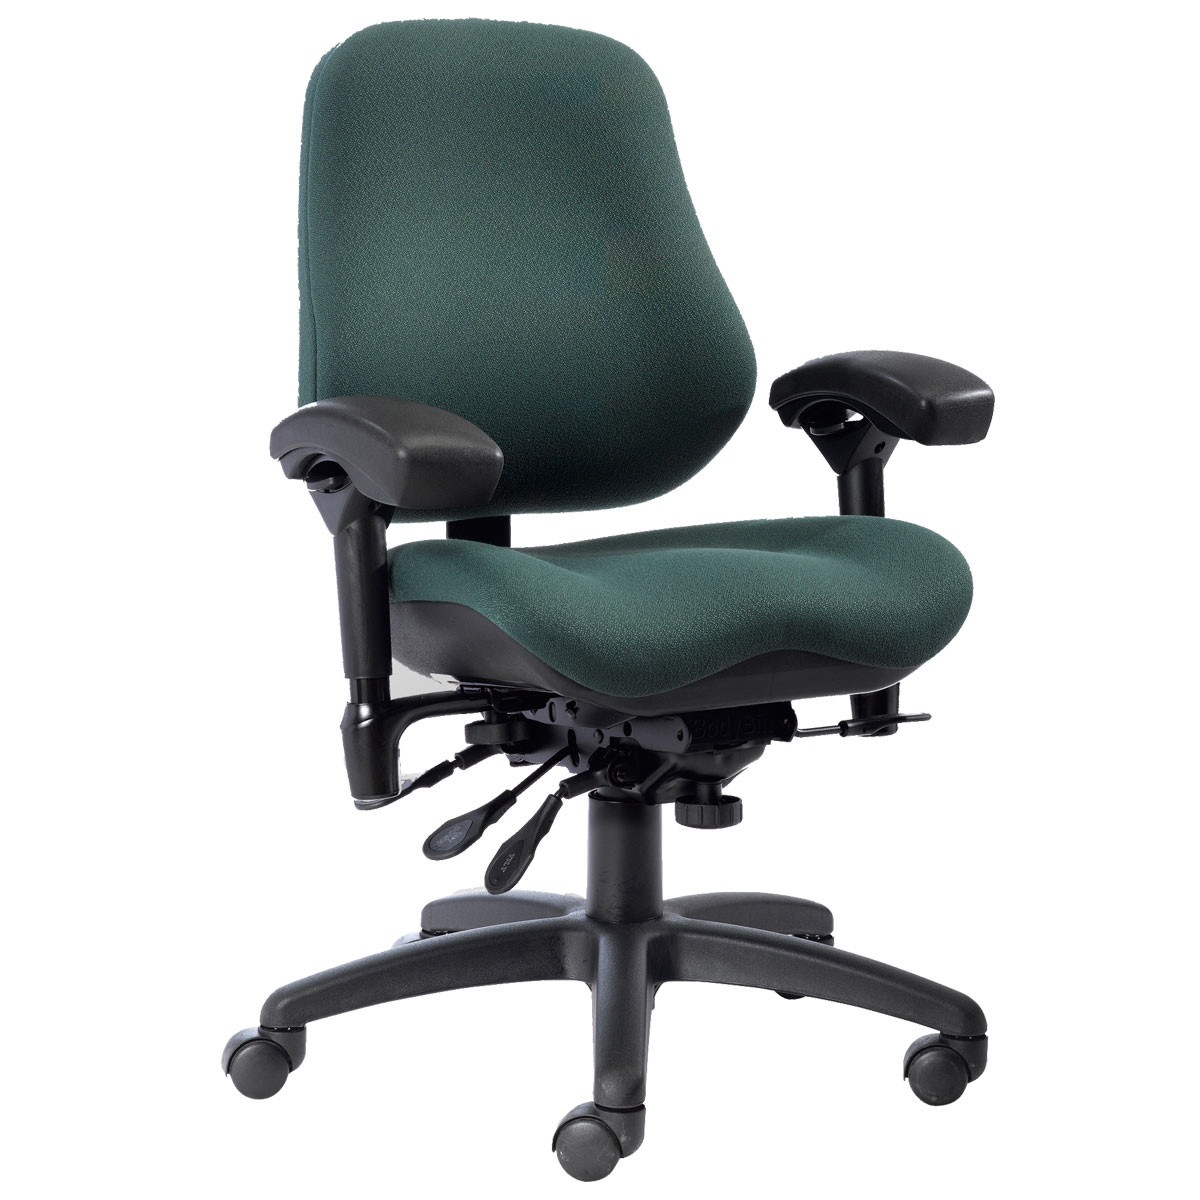 Body Built Chairs The Bodybilt J2507 High Back Executive Chair Shop Ergonomic Chairs